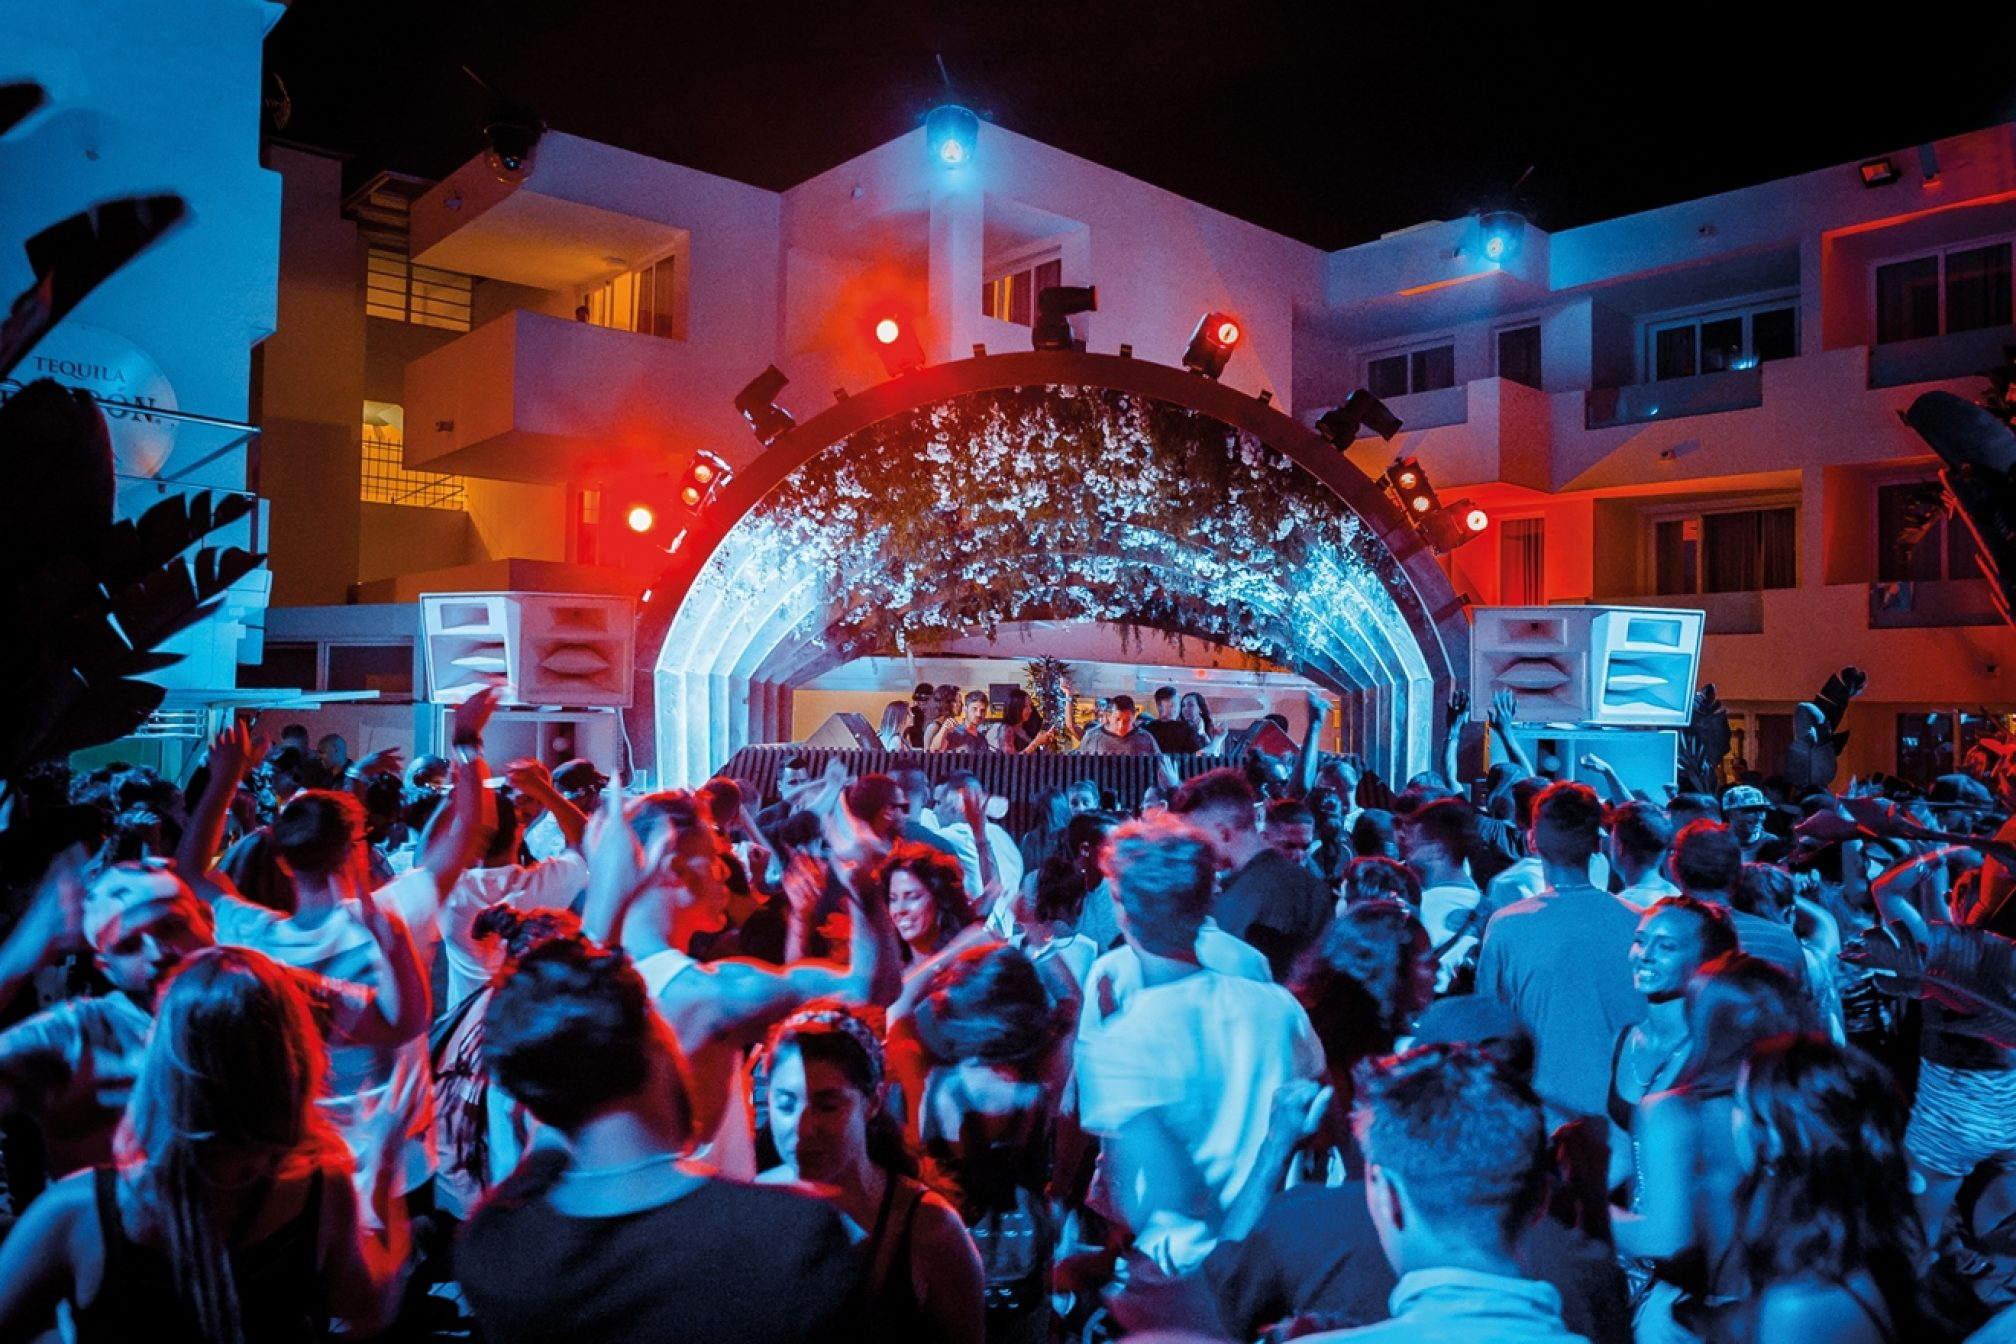 Music On's daytime Ibiza party champions new and local DJs